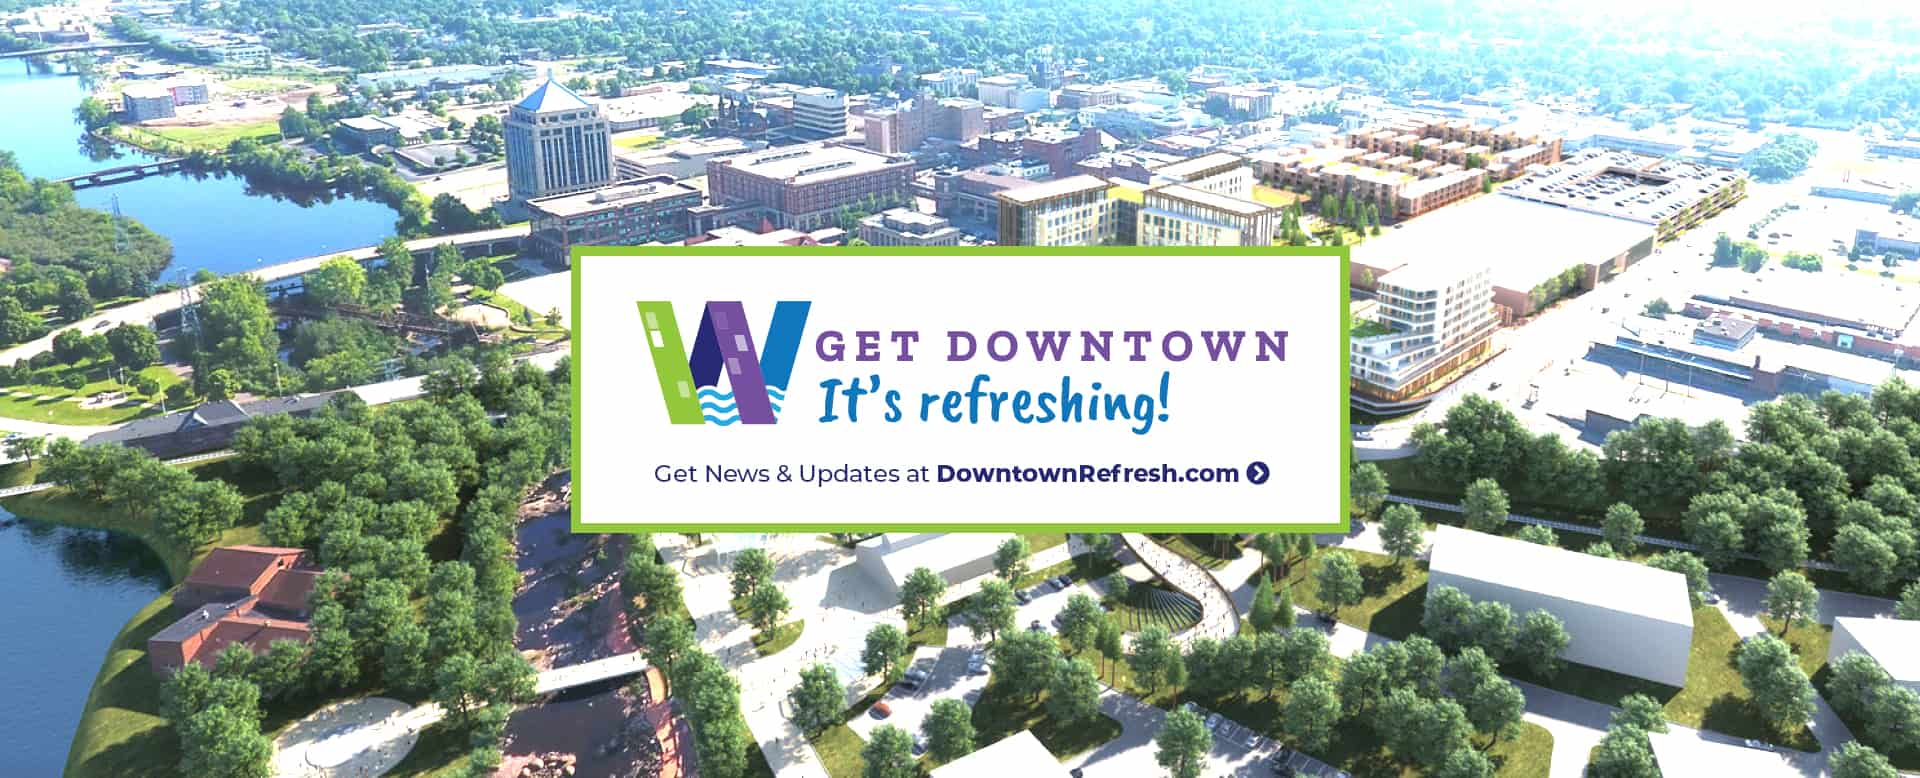 Wausau Center Mall demo campaign Get Downtown. It's Refreshing!